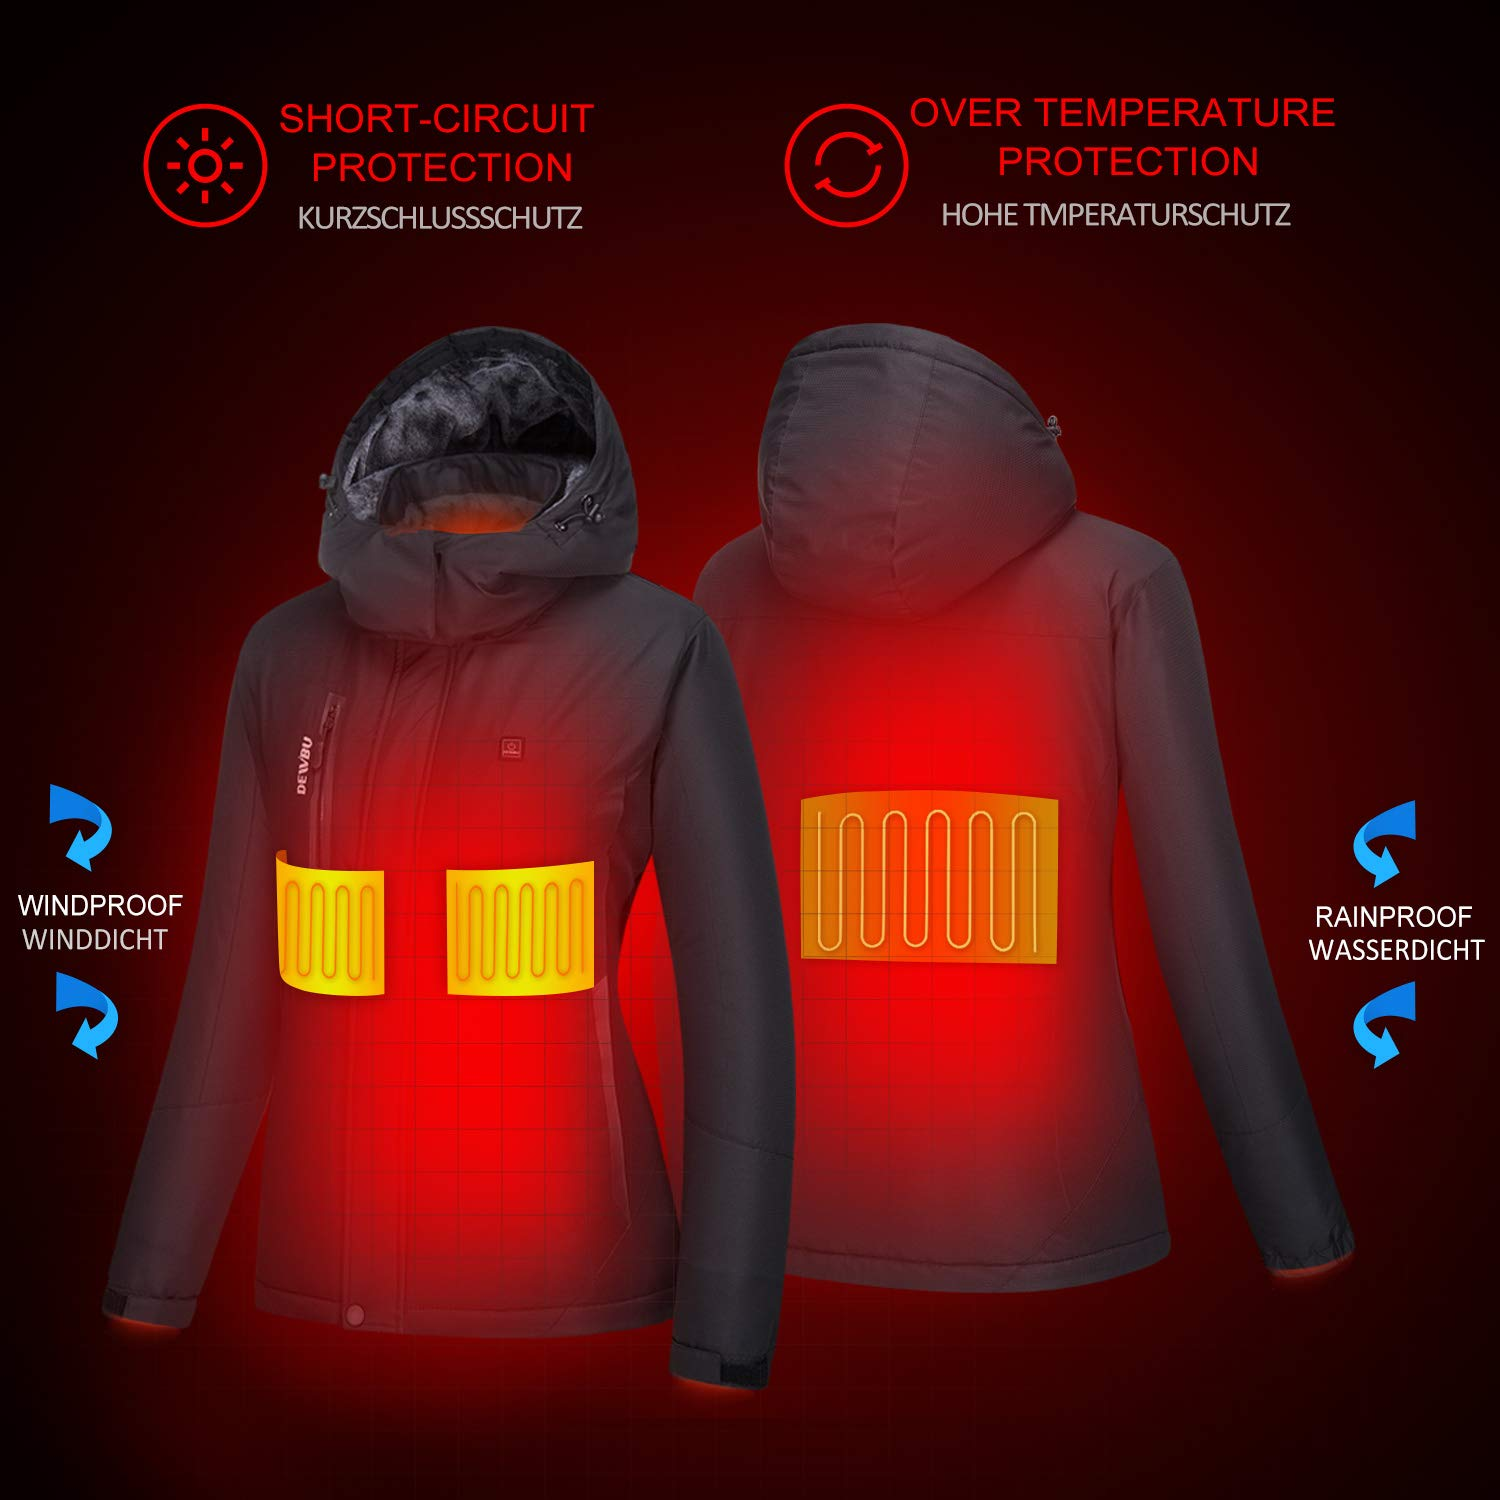 DEWBU Heating Jacket Outdoor Heated Clothing with 5000MAH 7.4V Battery for Hiking Fishing Camping Motorcycle